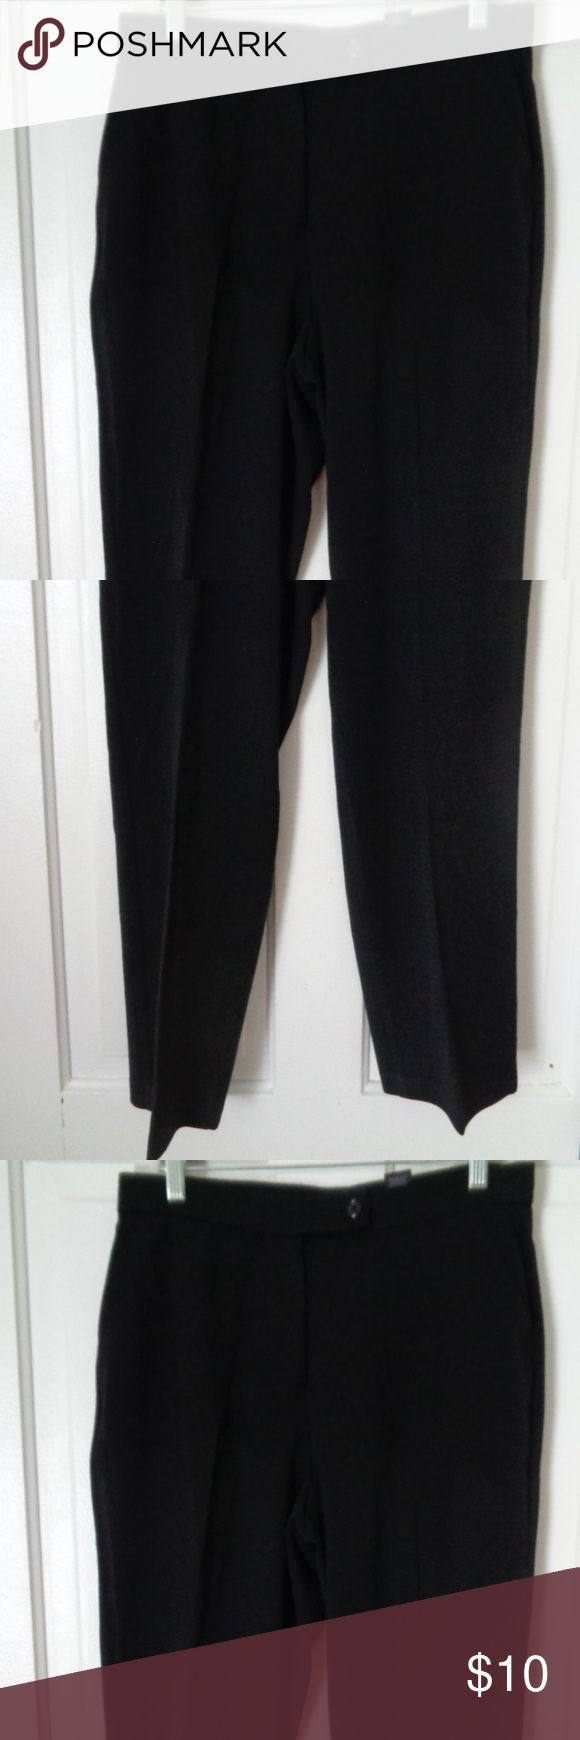 """Investments Petites Black Dress Pants Size 6P Investments Petites Black Dress Pants Size 6P Polyester Rayon Spandex The have some stretch Waist 14"""" flat Inseam 29"""" Rise 11"""" Leg opening 7 3/4"""" Very nice condition Beautiful pants. Dress up down. P16 Investments Petites Pants Trousers"""